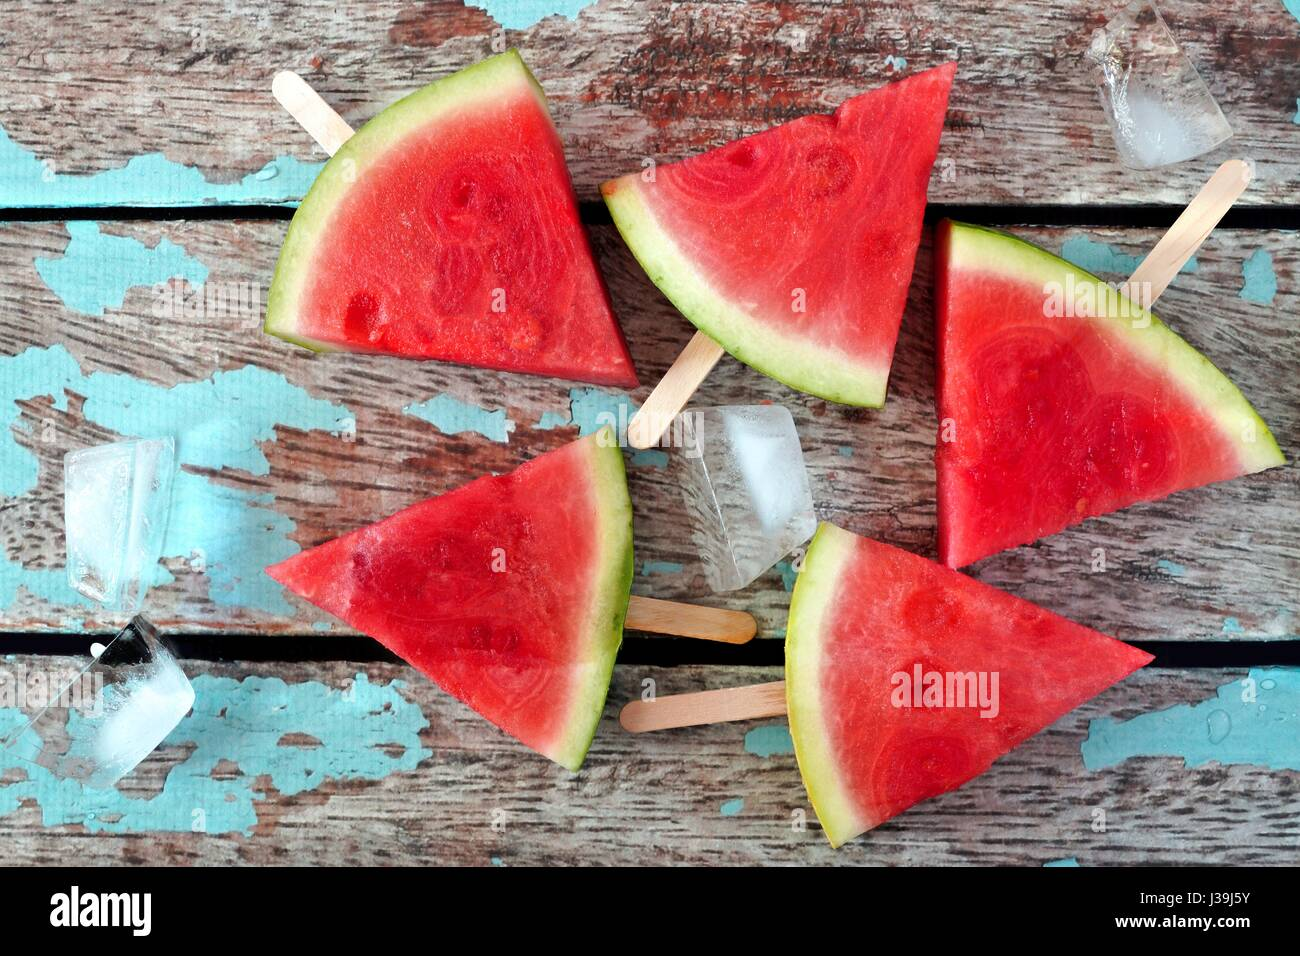 Group of watermelon slice popsicles on a rustic blue wood background - Stock Image